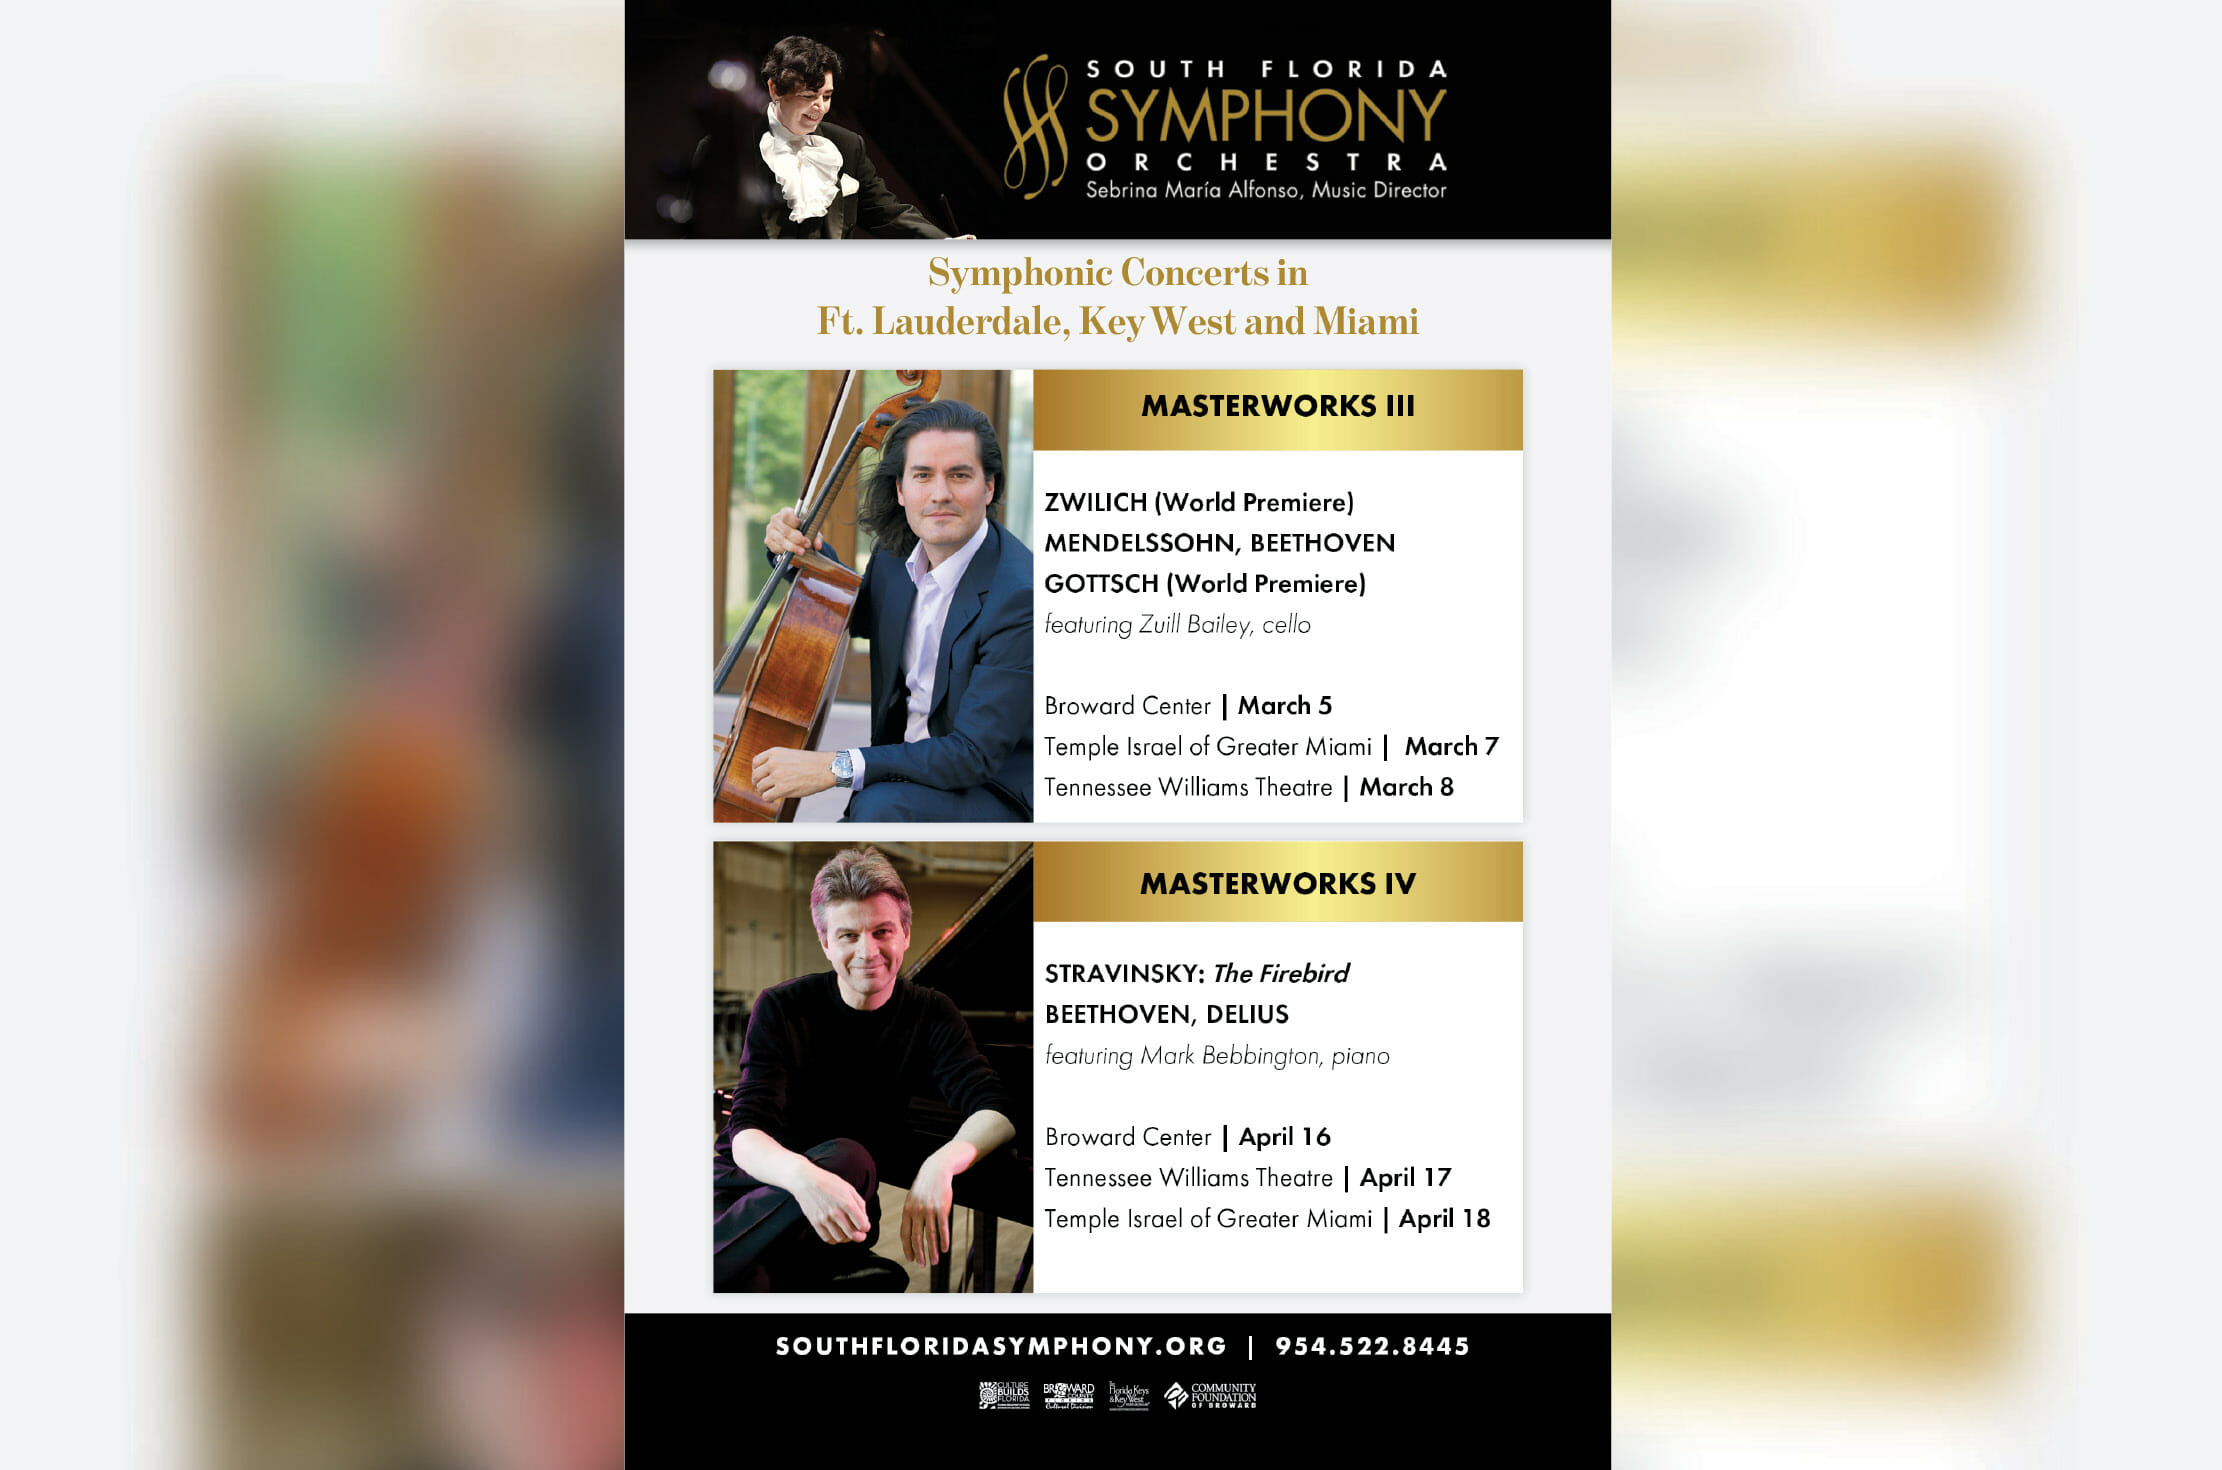 The South Florida Symphony Orchestra Welcomes Mark Bebbington